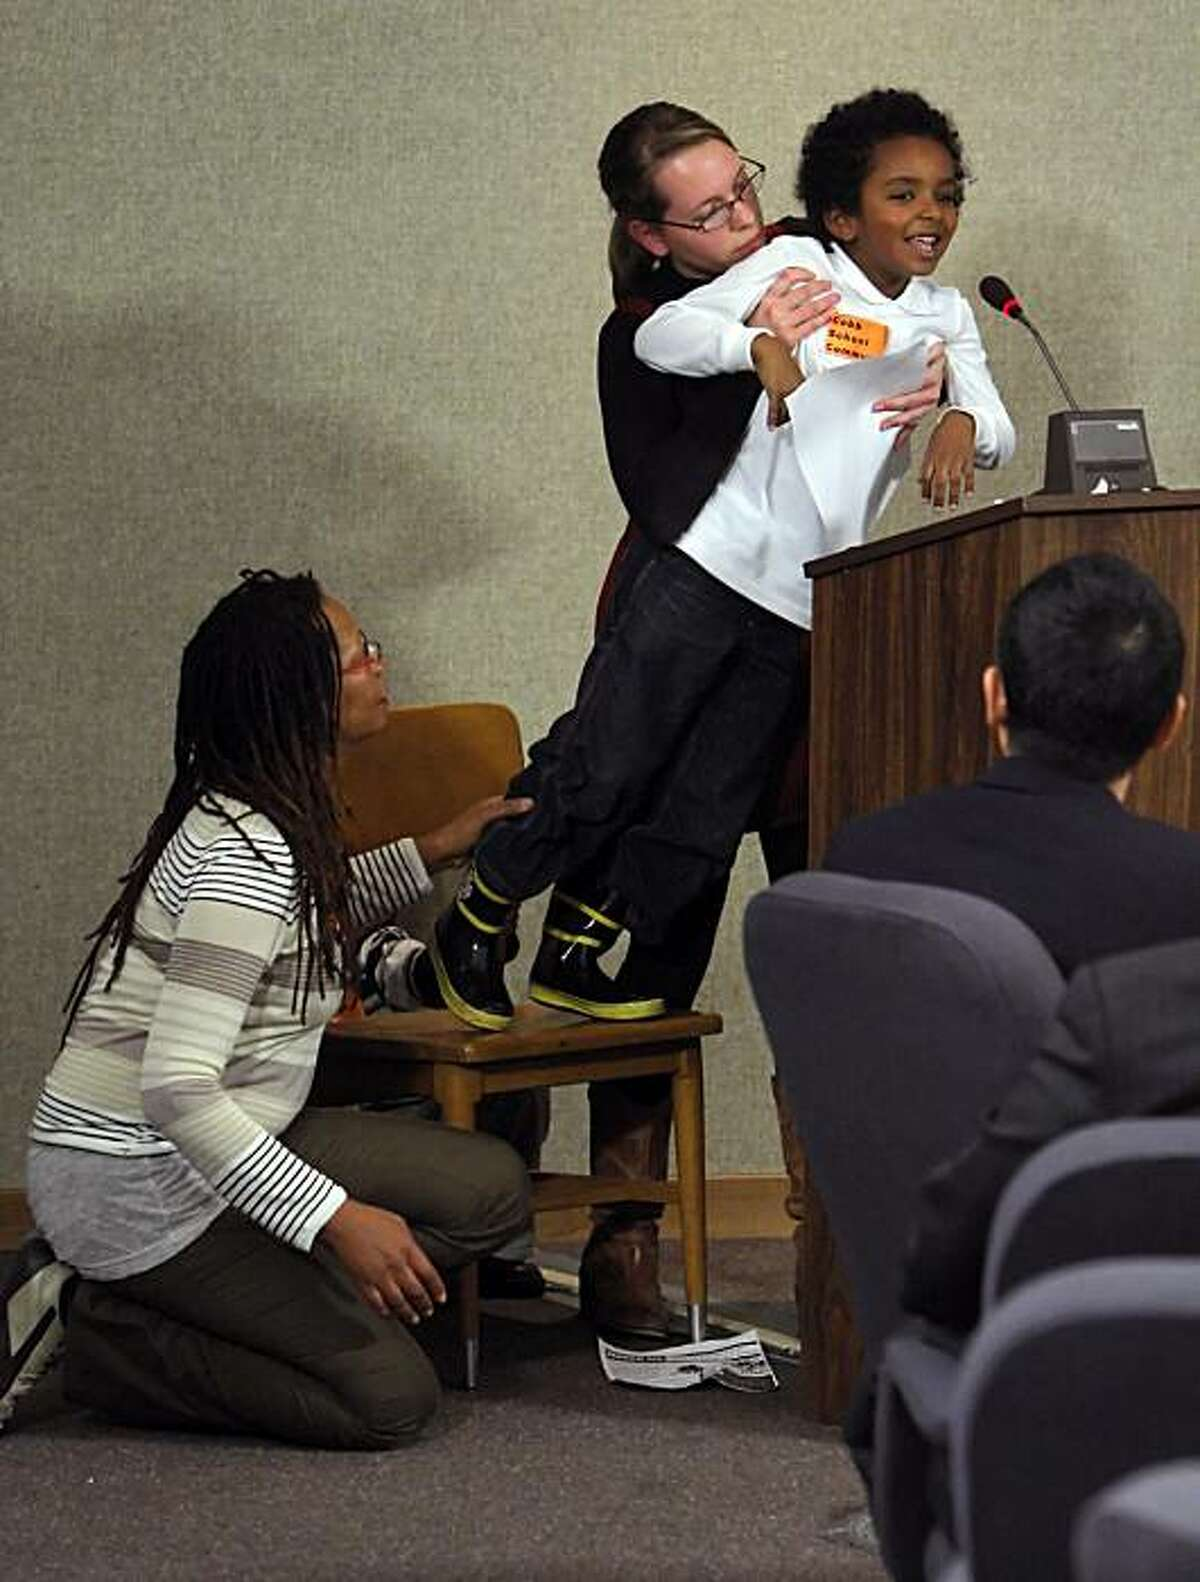 Noah Tekeste, at mic, gets a helping hand from Dr. Yvette Fagan, kneeling, and Savannah Thomson as he addresses the school board in San Francisco, Calif., on Tuesday, January 12, 2010. The school board will be deciding a controversial issue about which program to keep at Cobb Elementary -- the traditional program or the montessori. It's a huge debate among parents.